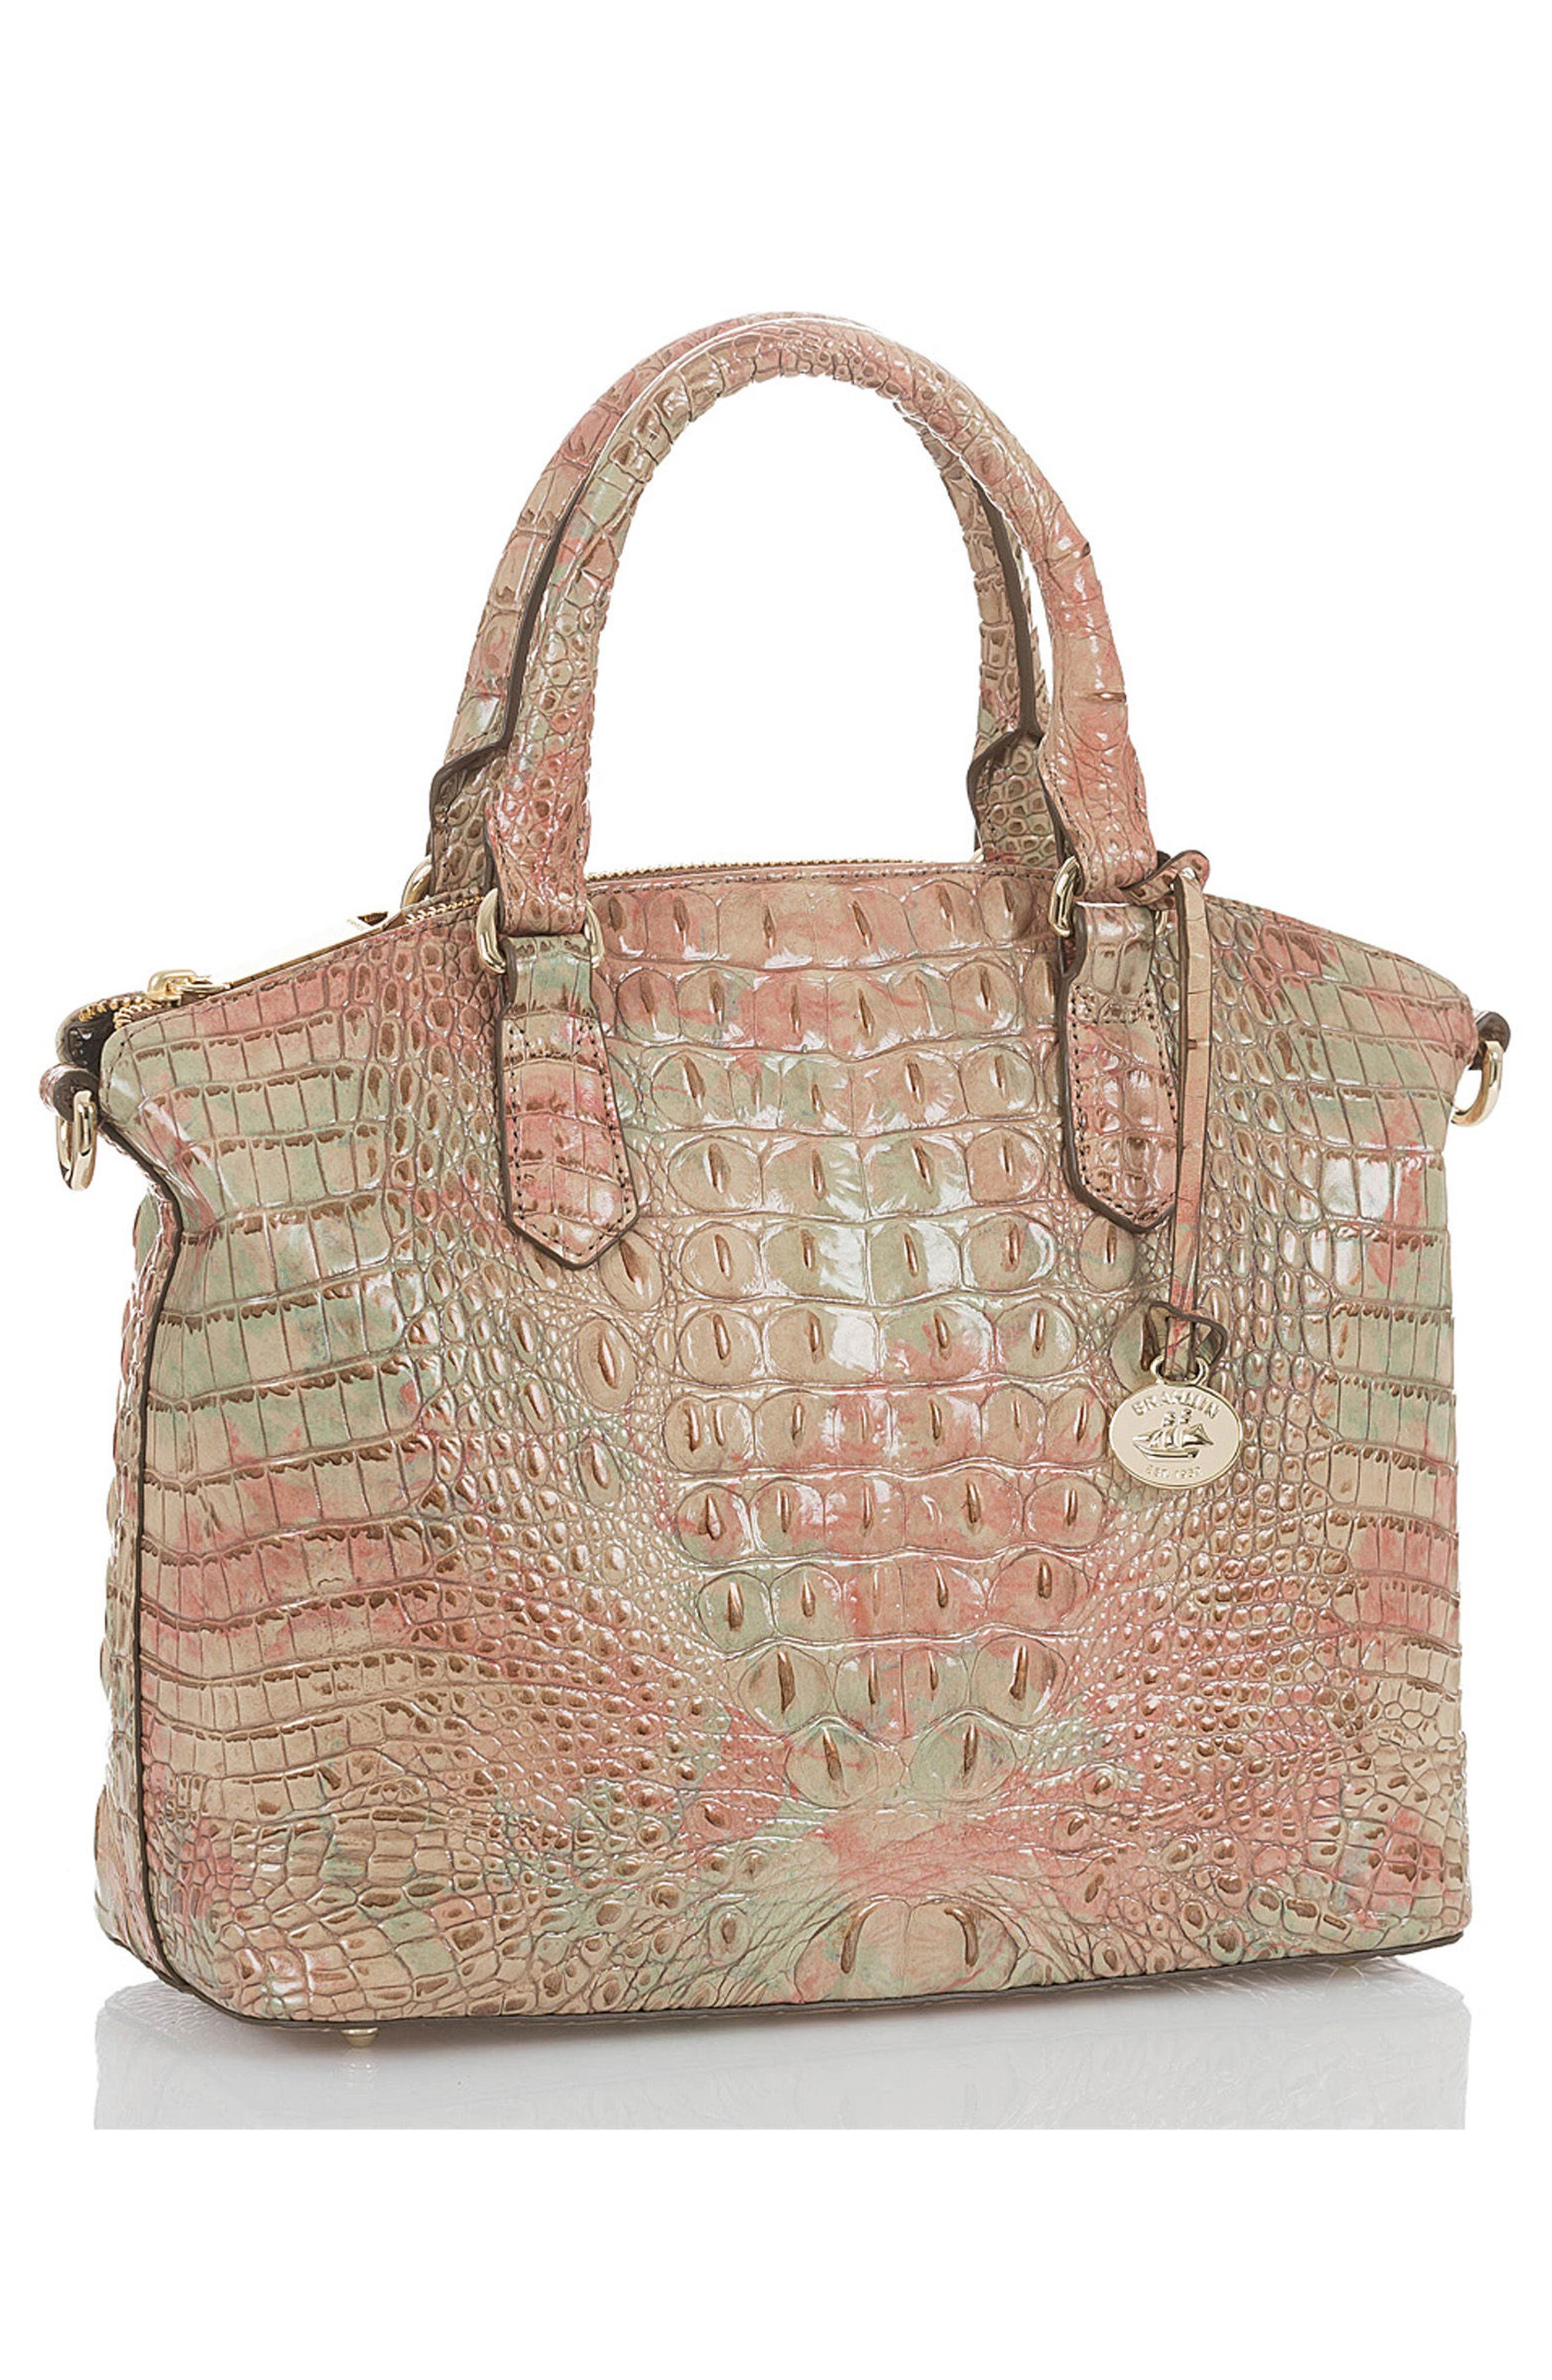 'Medium Duxbury' Croc Embossed Leather Satchel,                             Alternate thumbnail 4, color,                             Sahara